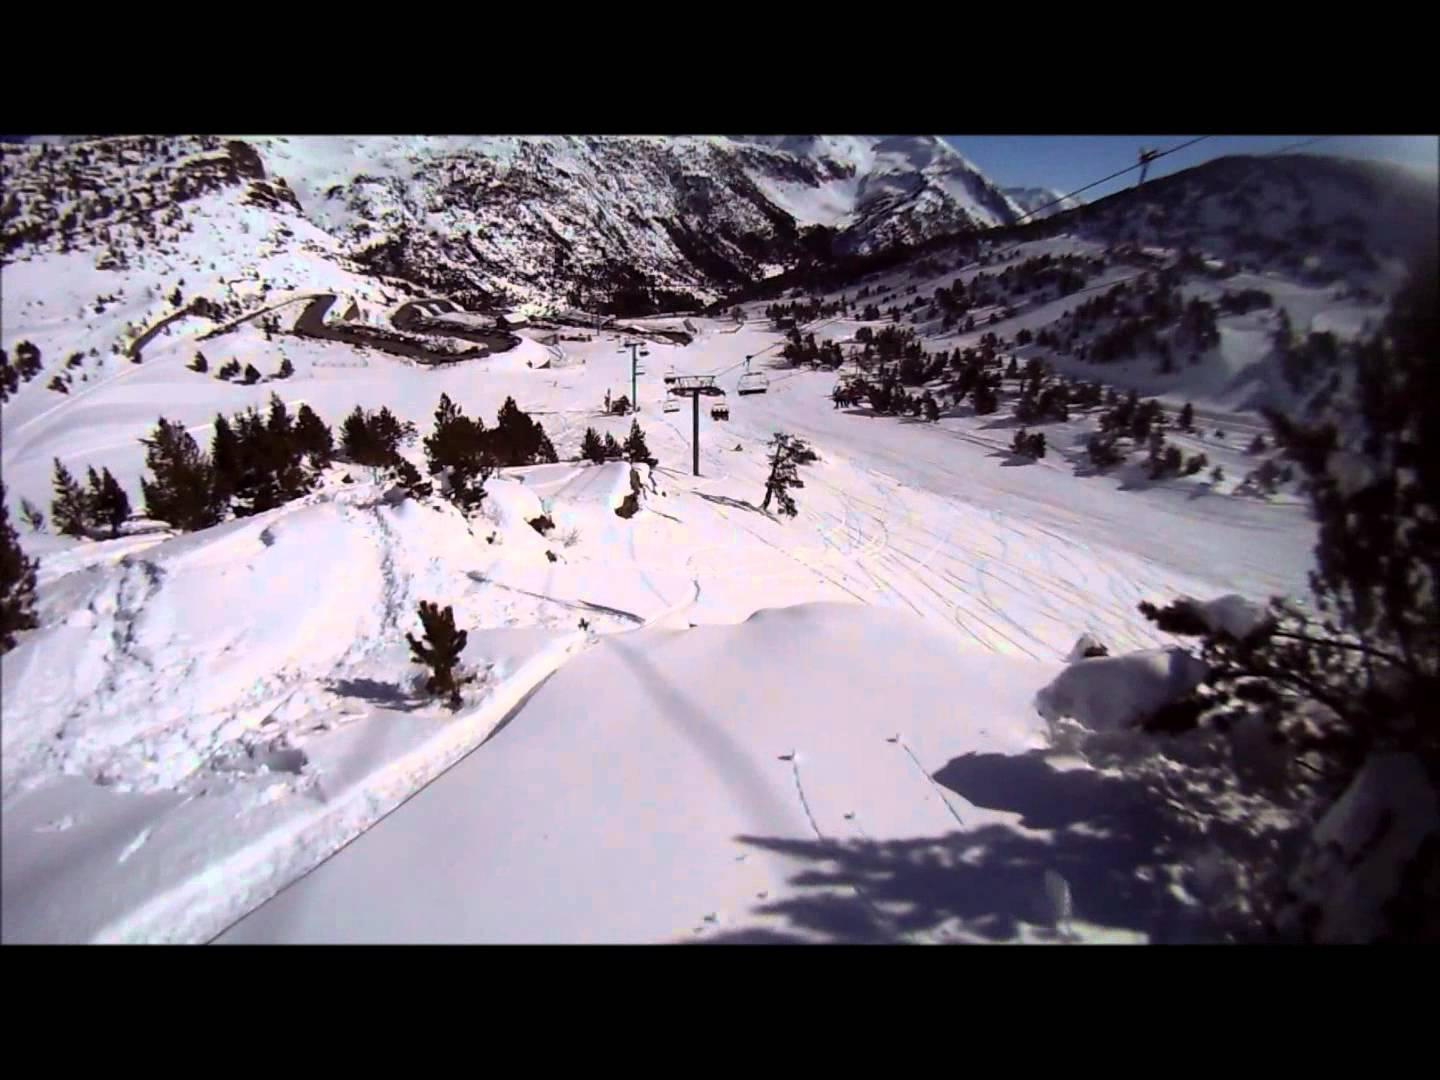 Arcalis, Vallnord - March 24th 2012